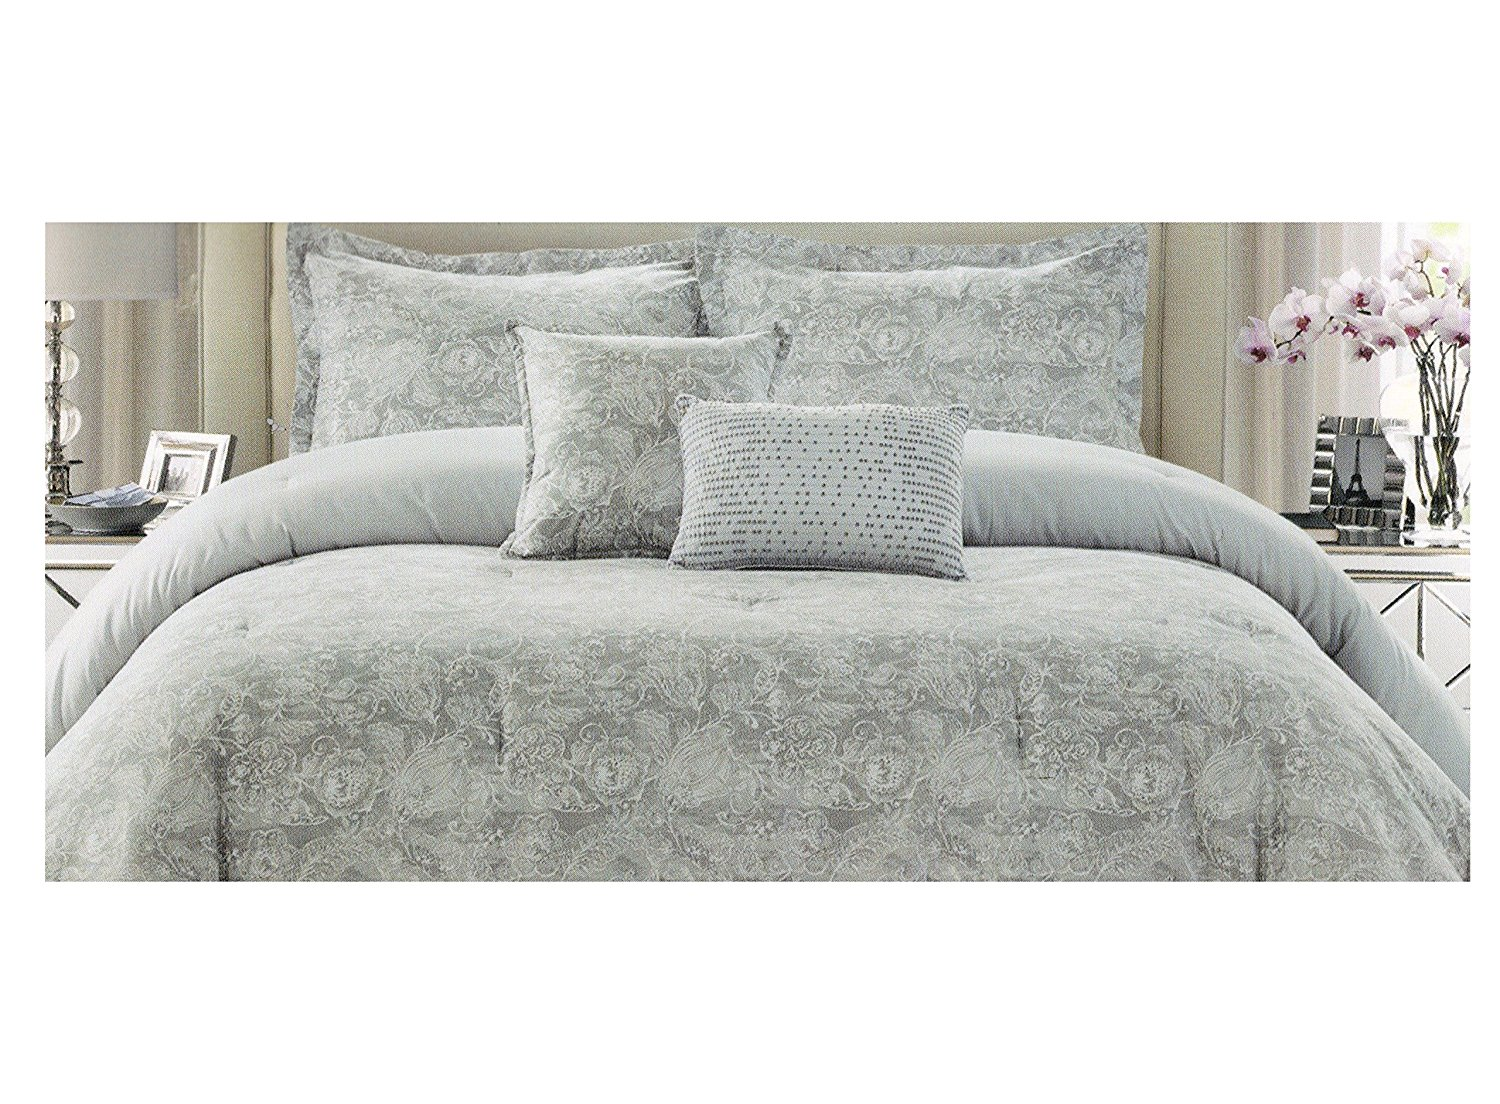 bedding shipping metallic piece today design grey overstock cover bath set silver intelligent khloe printed product duvet free